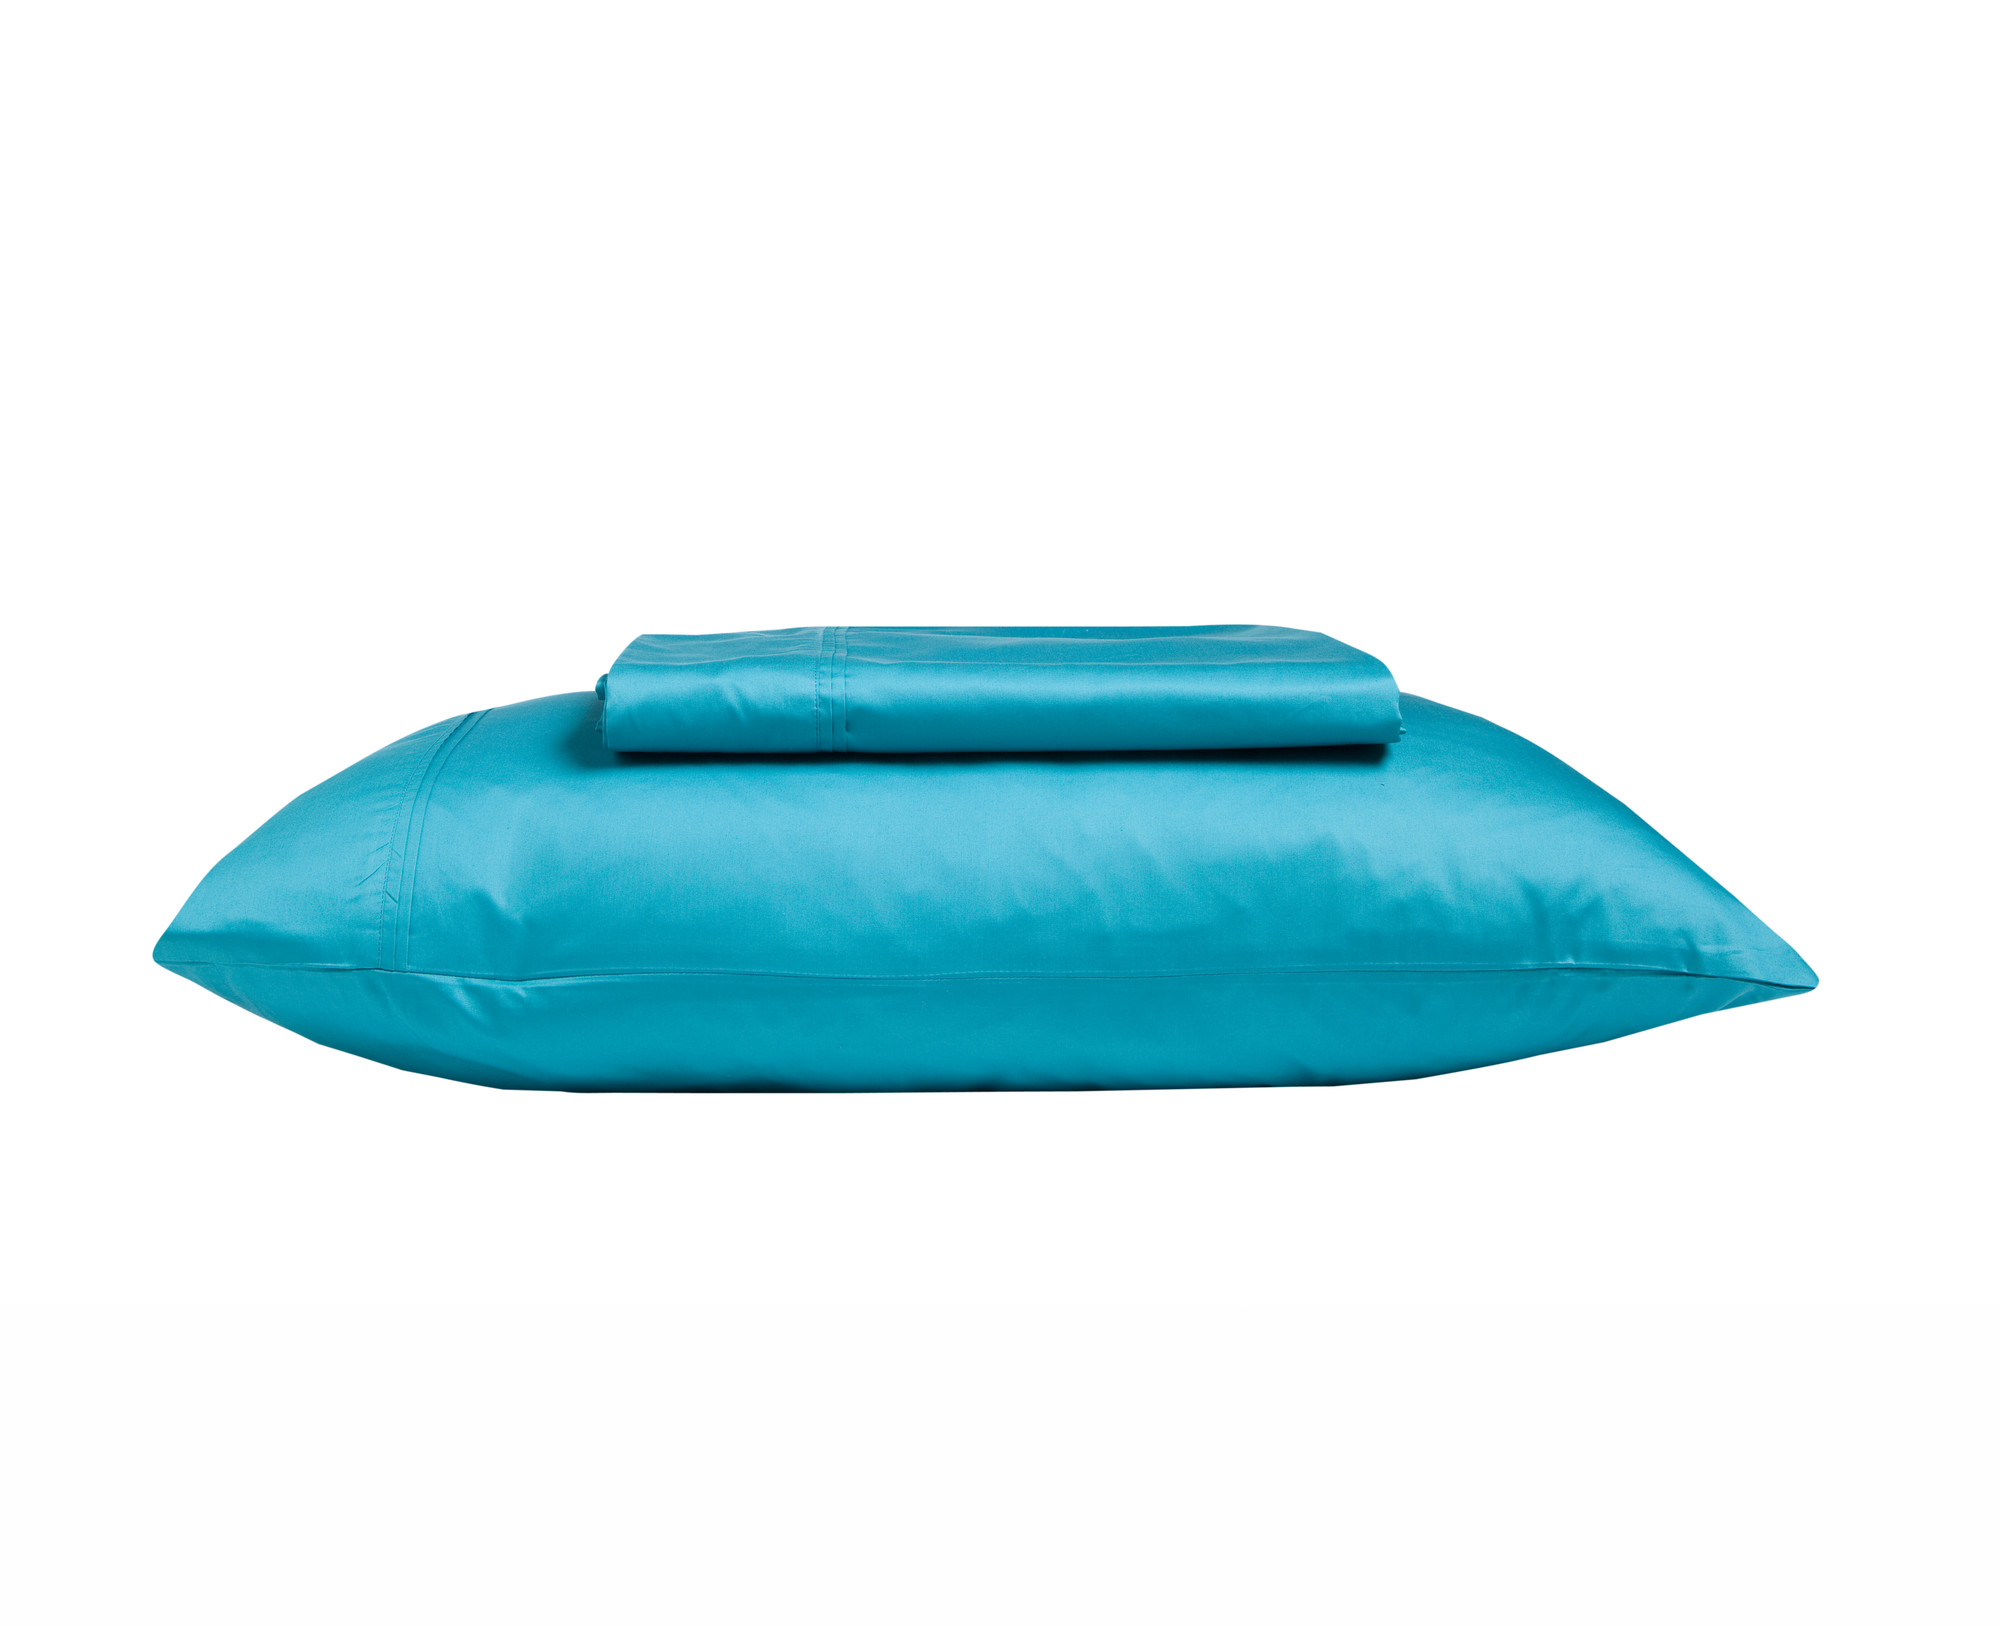 NEW-Teal-Egyptian-Cotton-Sheet-Sets-Kas-Bed-Sheets